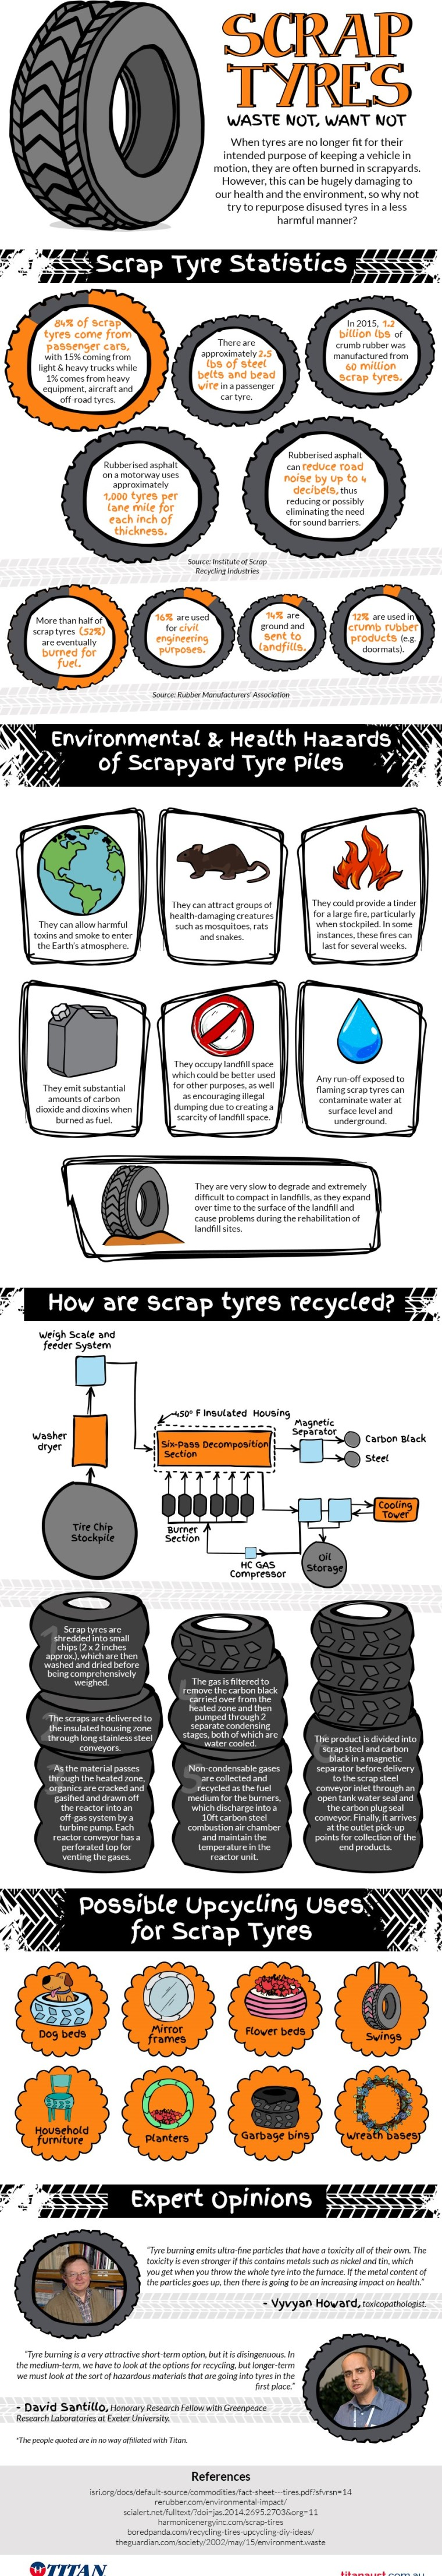 Waste Not: Scrap Tyres [Infographic] | ecogreenlove